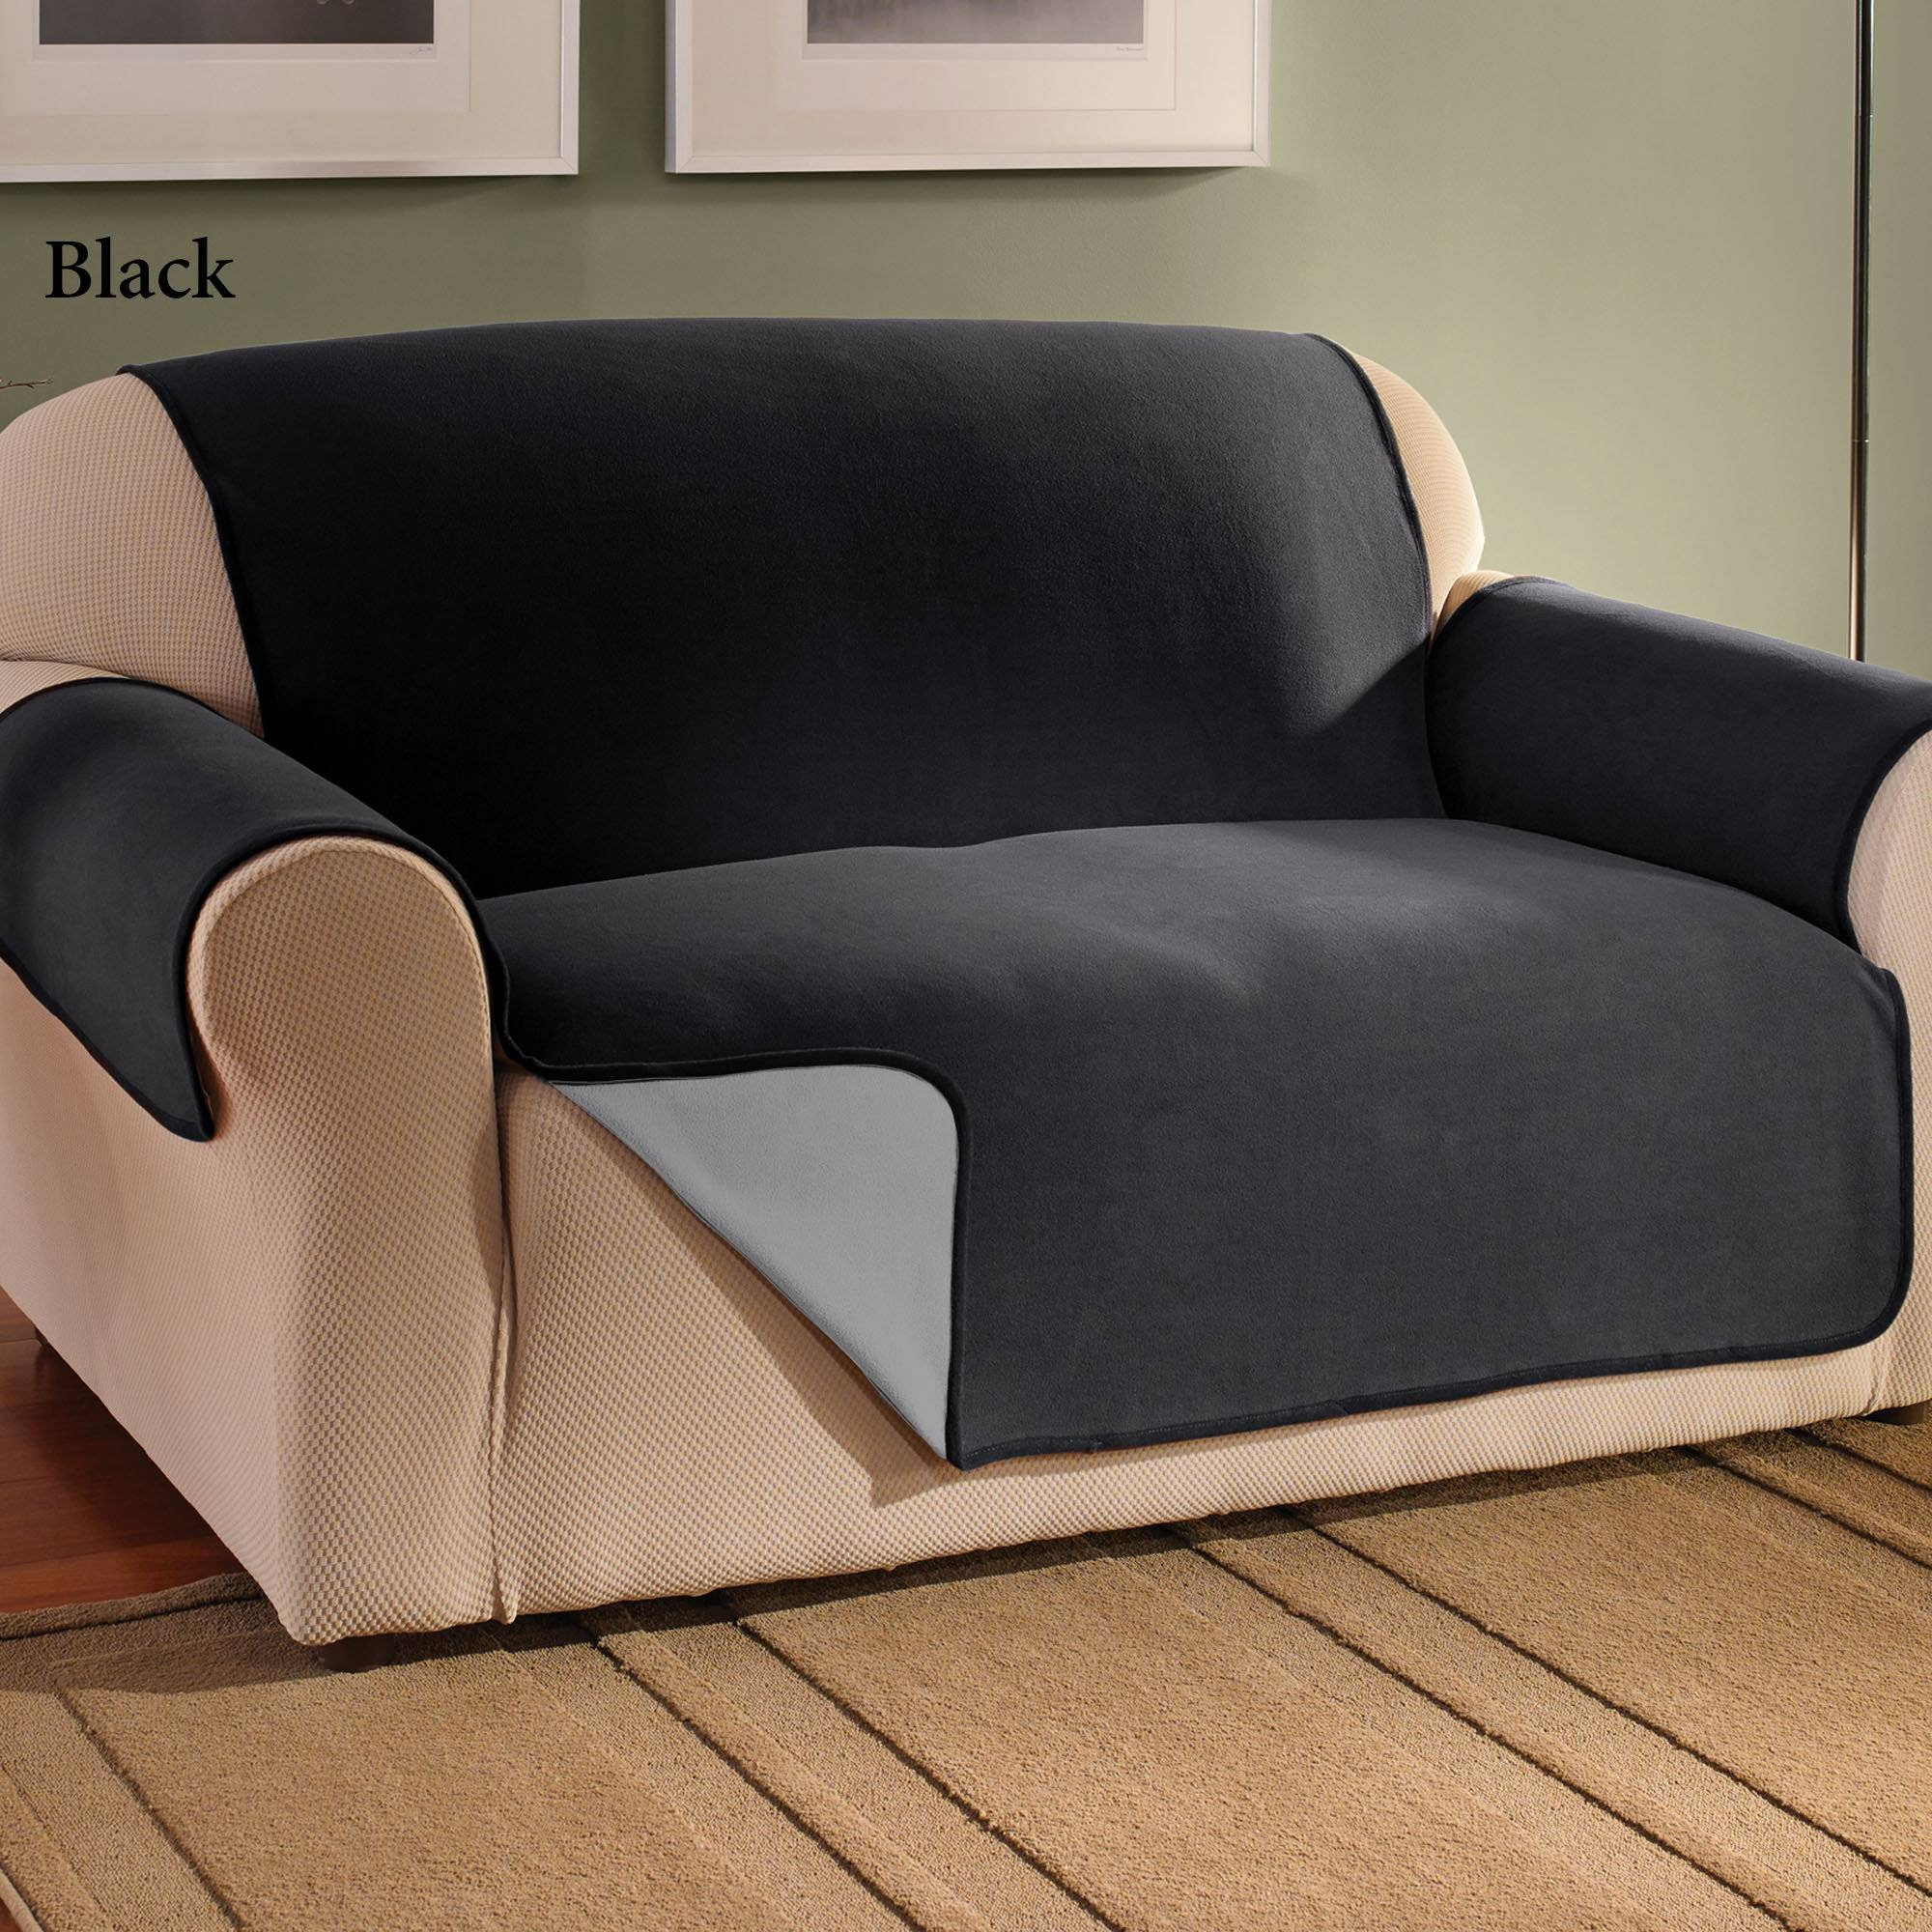 Furniture: Comfortable Cheap Couch Covers For Elegant Interior With Regard To Sofa Settee Covers (View 12 of 30)